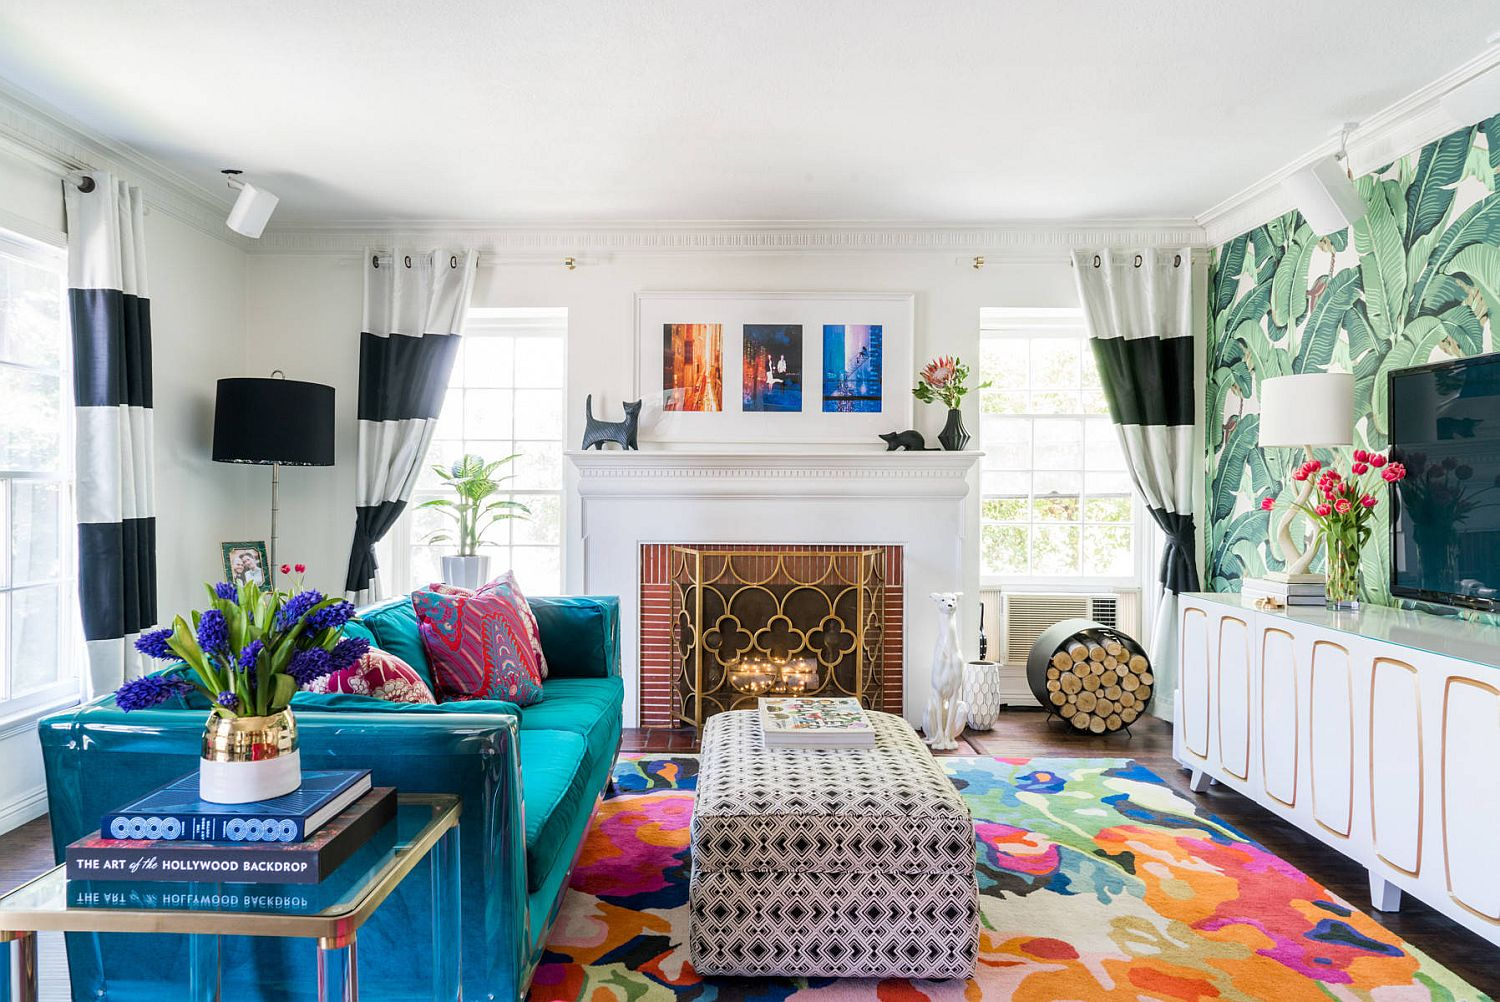 Brilliant blue couch and multi-colored rug for the small tropical style living space